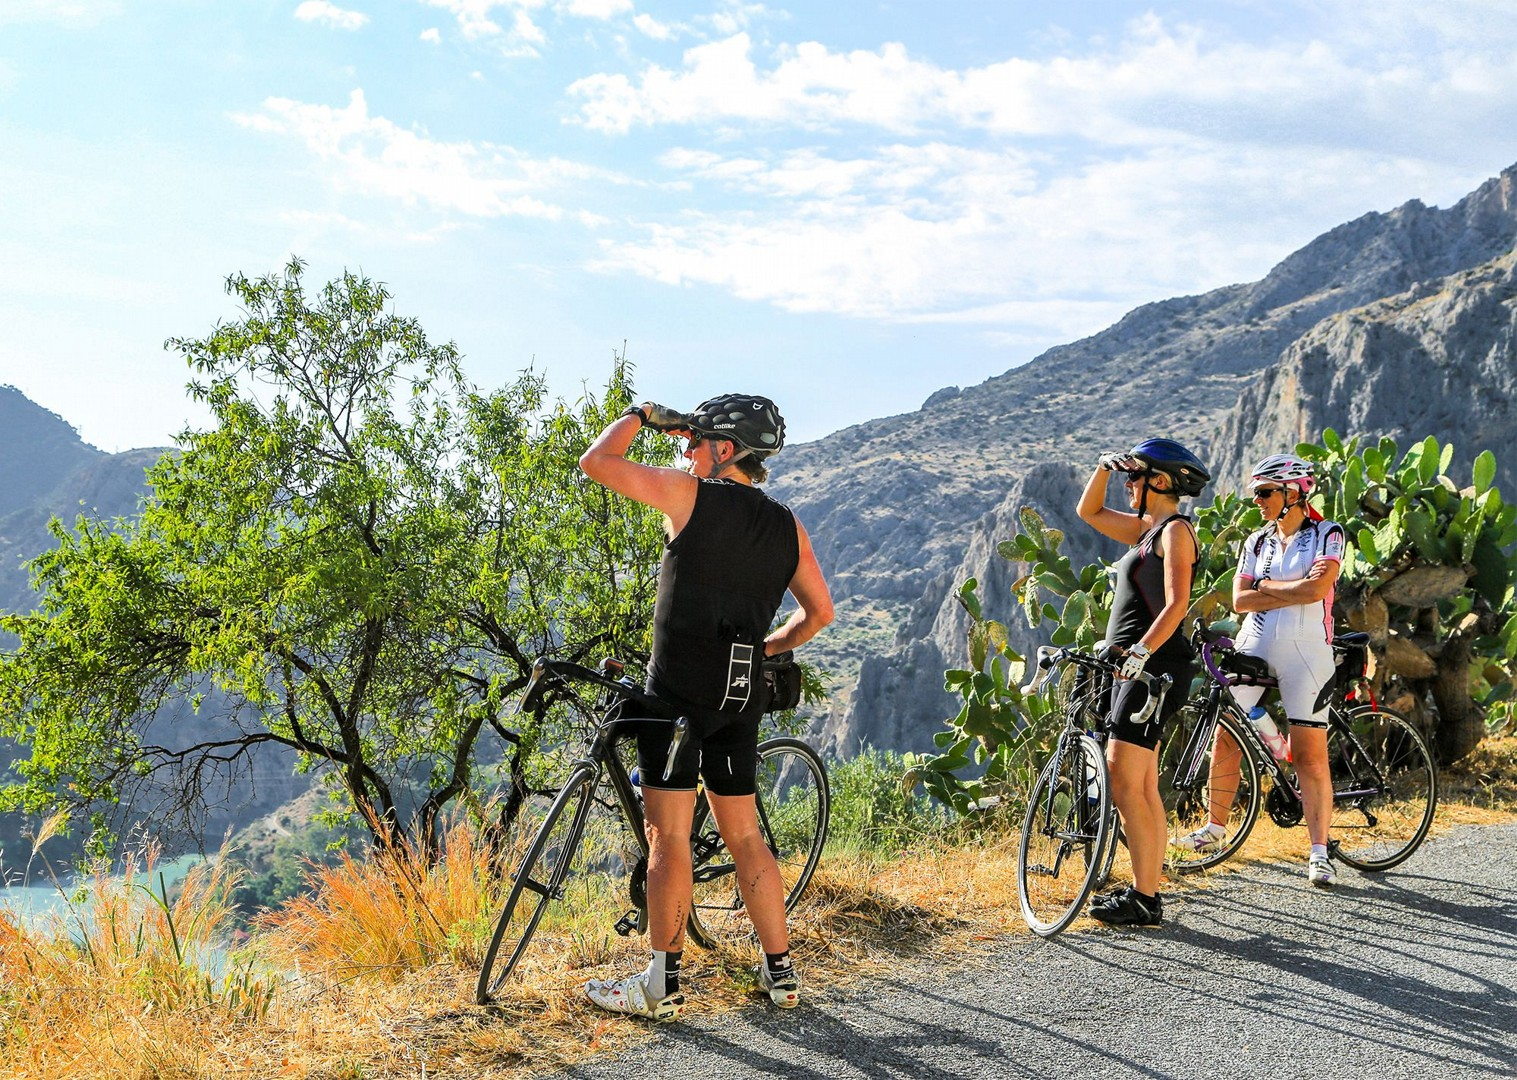 guided-road-cycling-spain-holiday-riding-north-to-south-saddle-skedaddle.jpg - Spain - Basque Country to Andalucia - North to South (21 Days) - Guided Road Cycling Holiday - Road Cycling